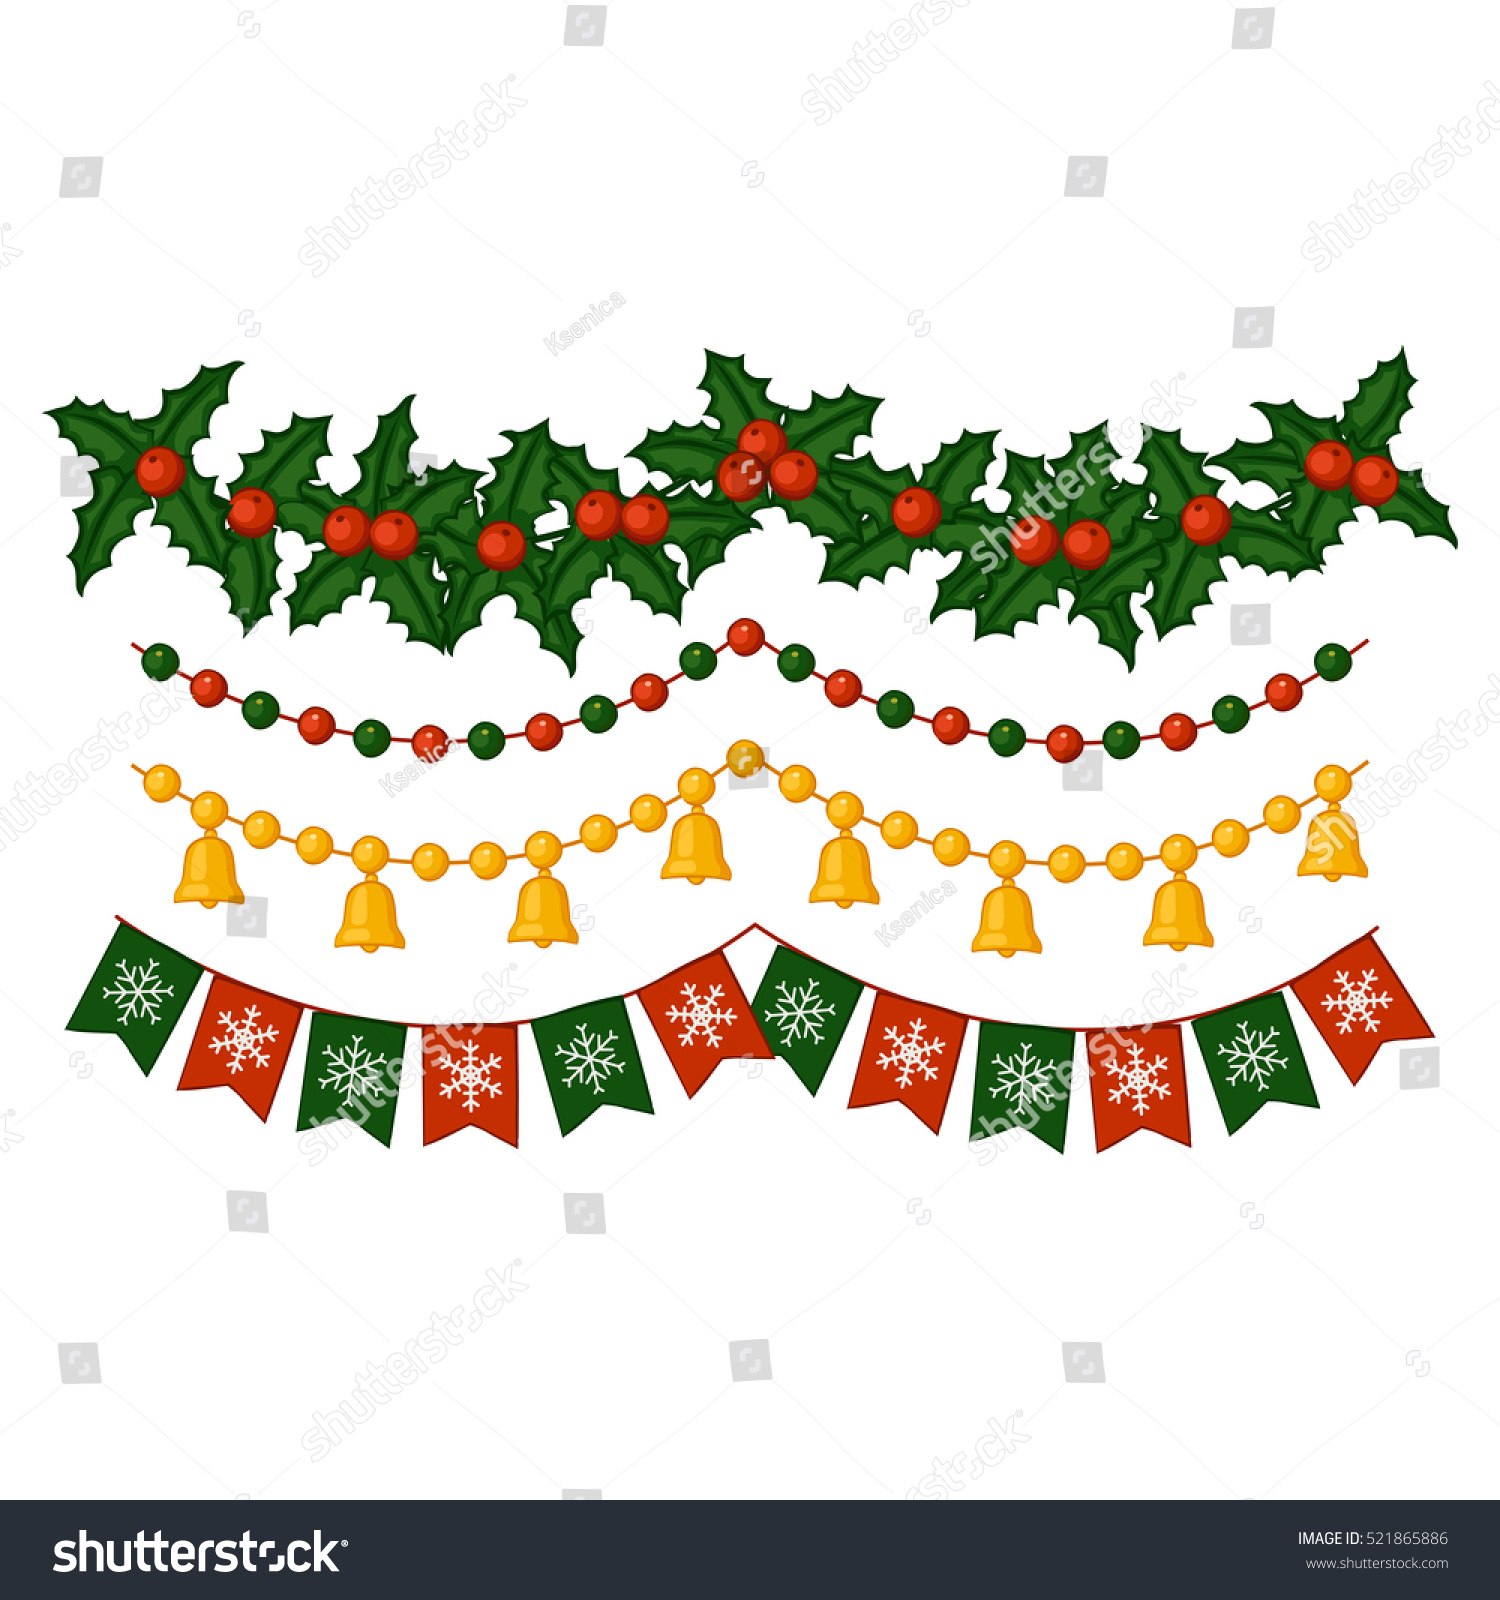 Set of Christmas garlands Bells flags mistletoe beads Elements for festive decor Vector illustration